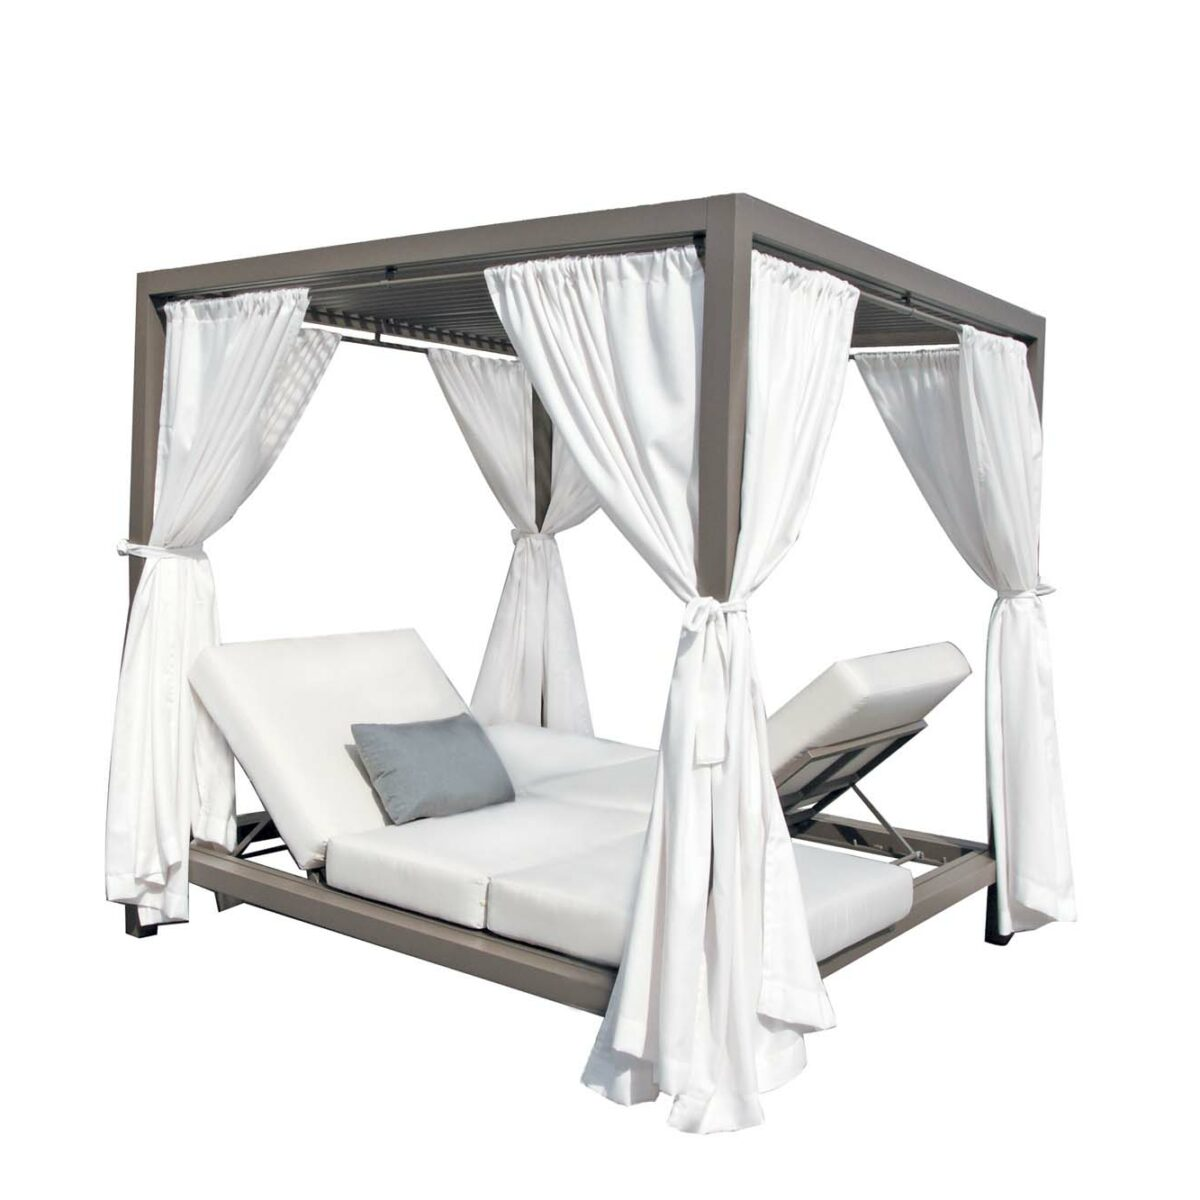 The Gianna daybed by Ratana with white curtains.